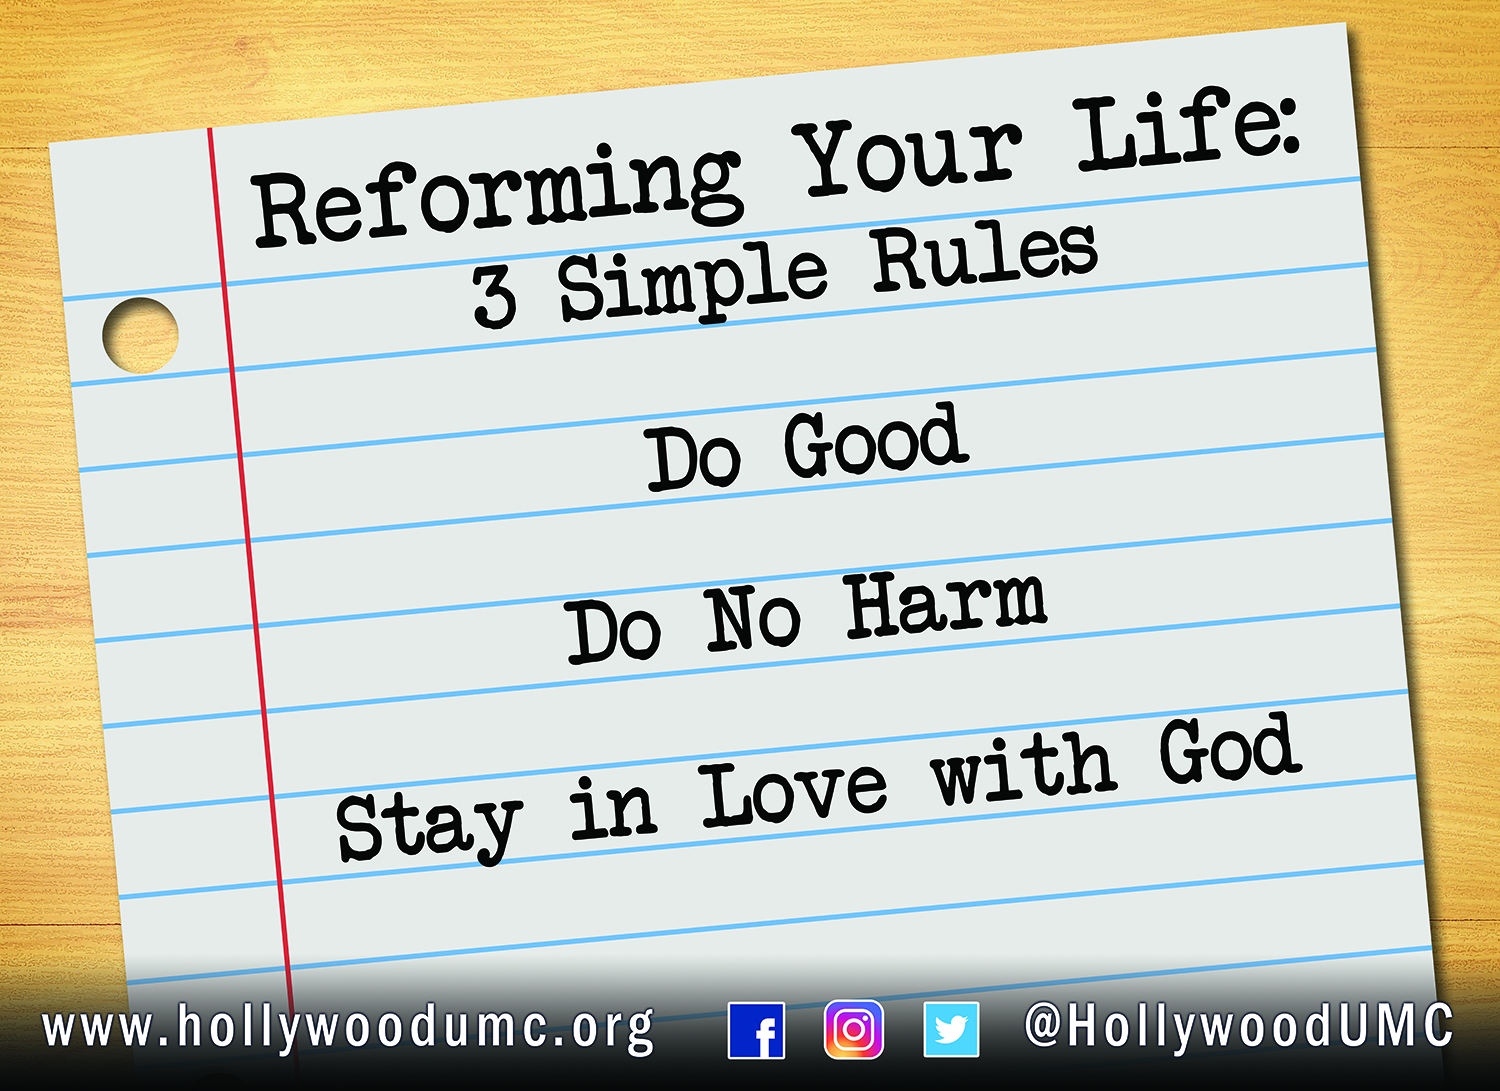 Reforming Your Life, Hwood San Banner (132x96)